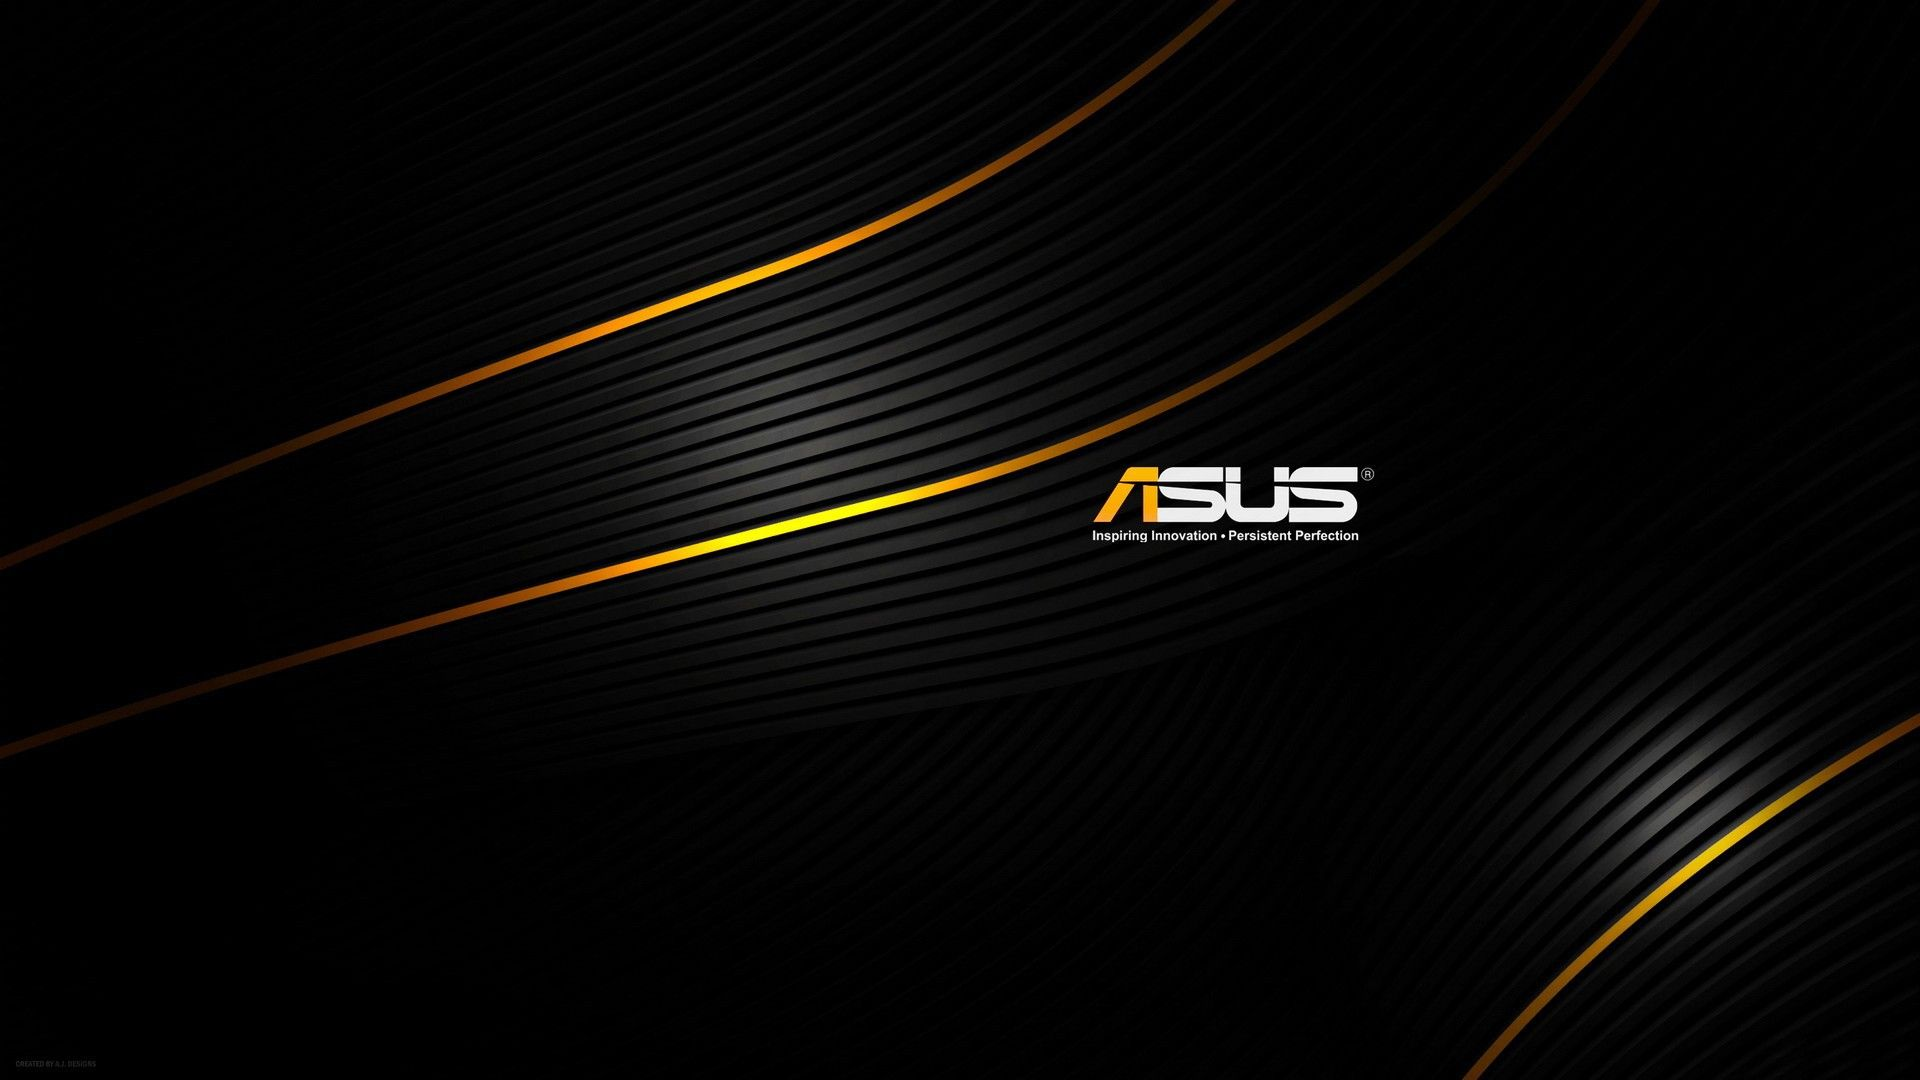 ASUS Wallpaper HD